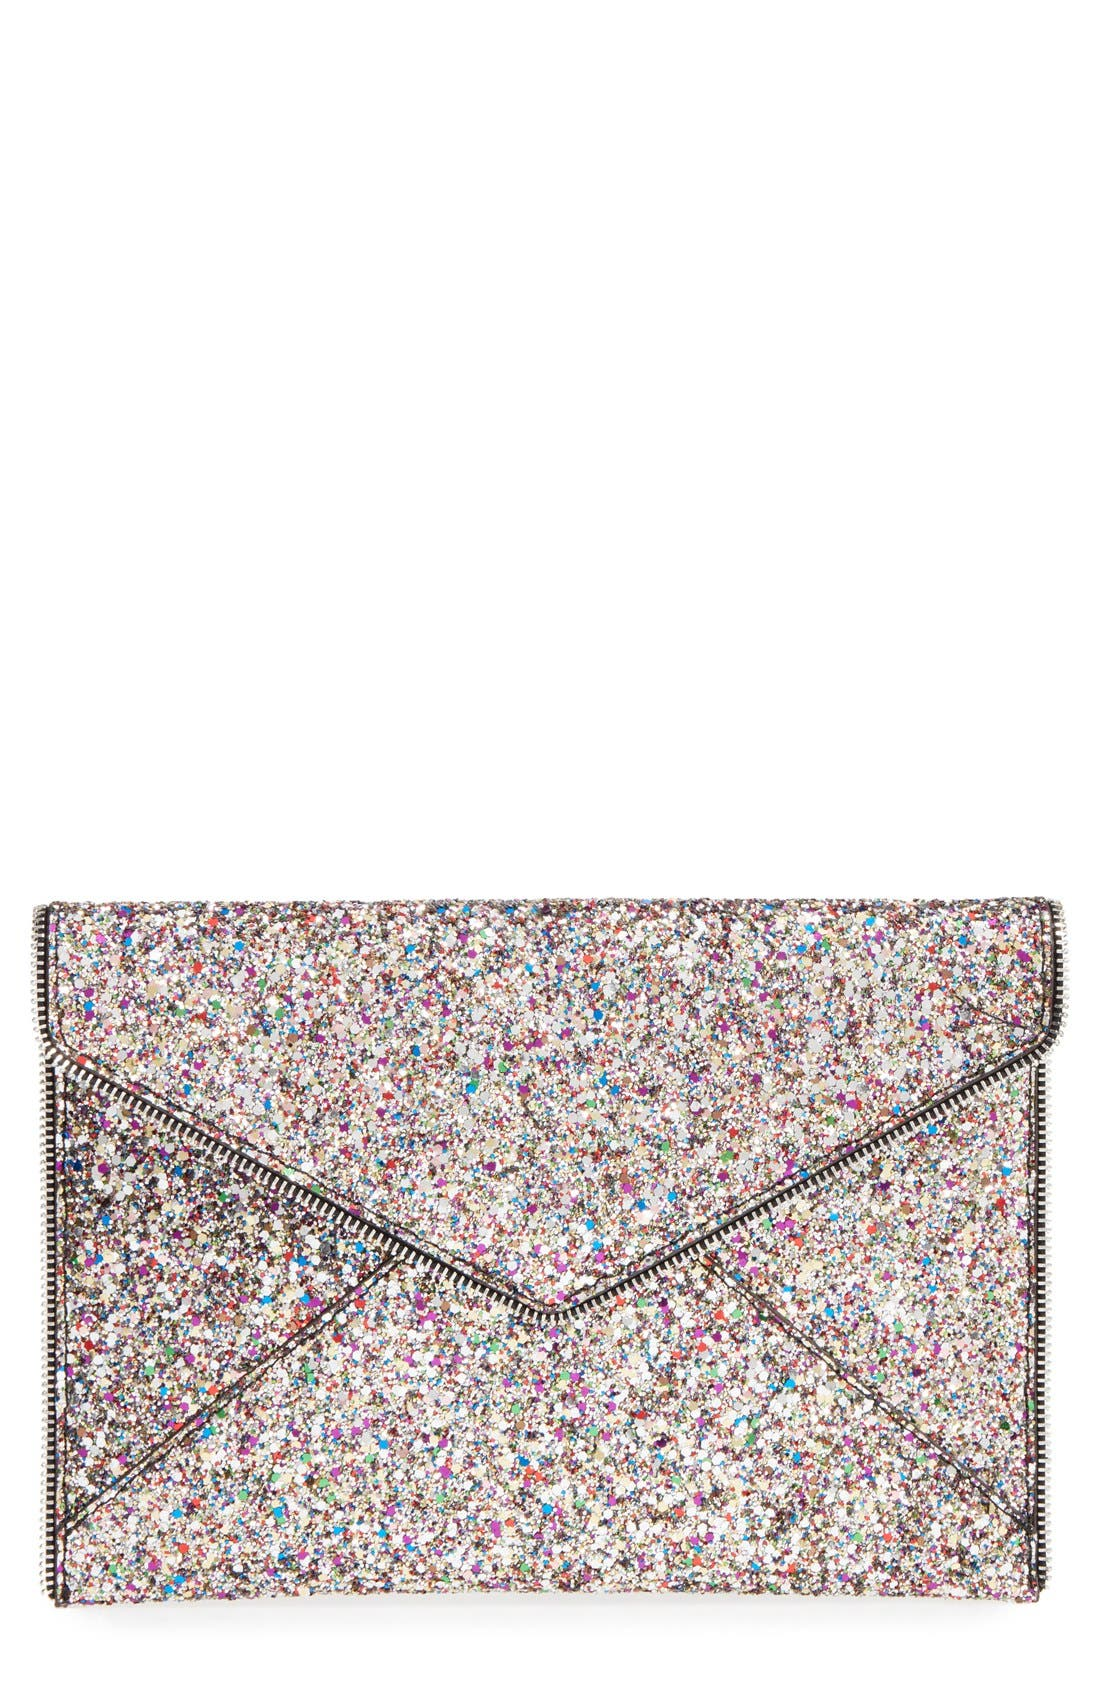 REBECCA MINKOFF, 'Leo' Envelope Clutch, Main thumbnail 1, color, SILVER/ SILVER HRDWR